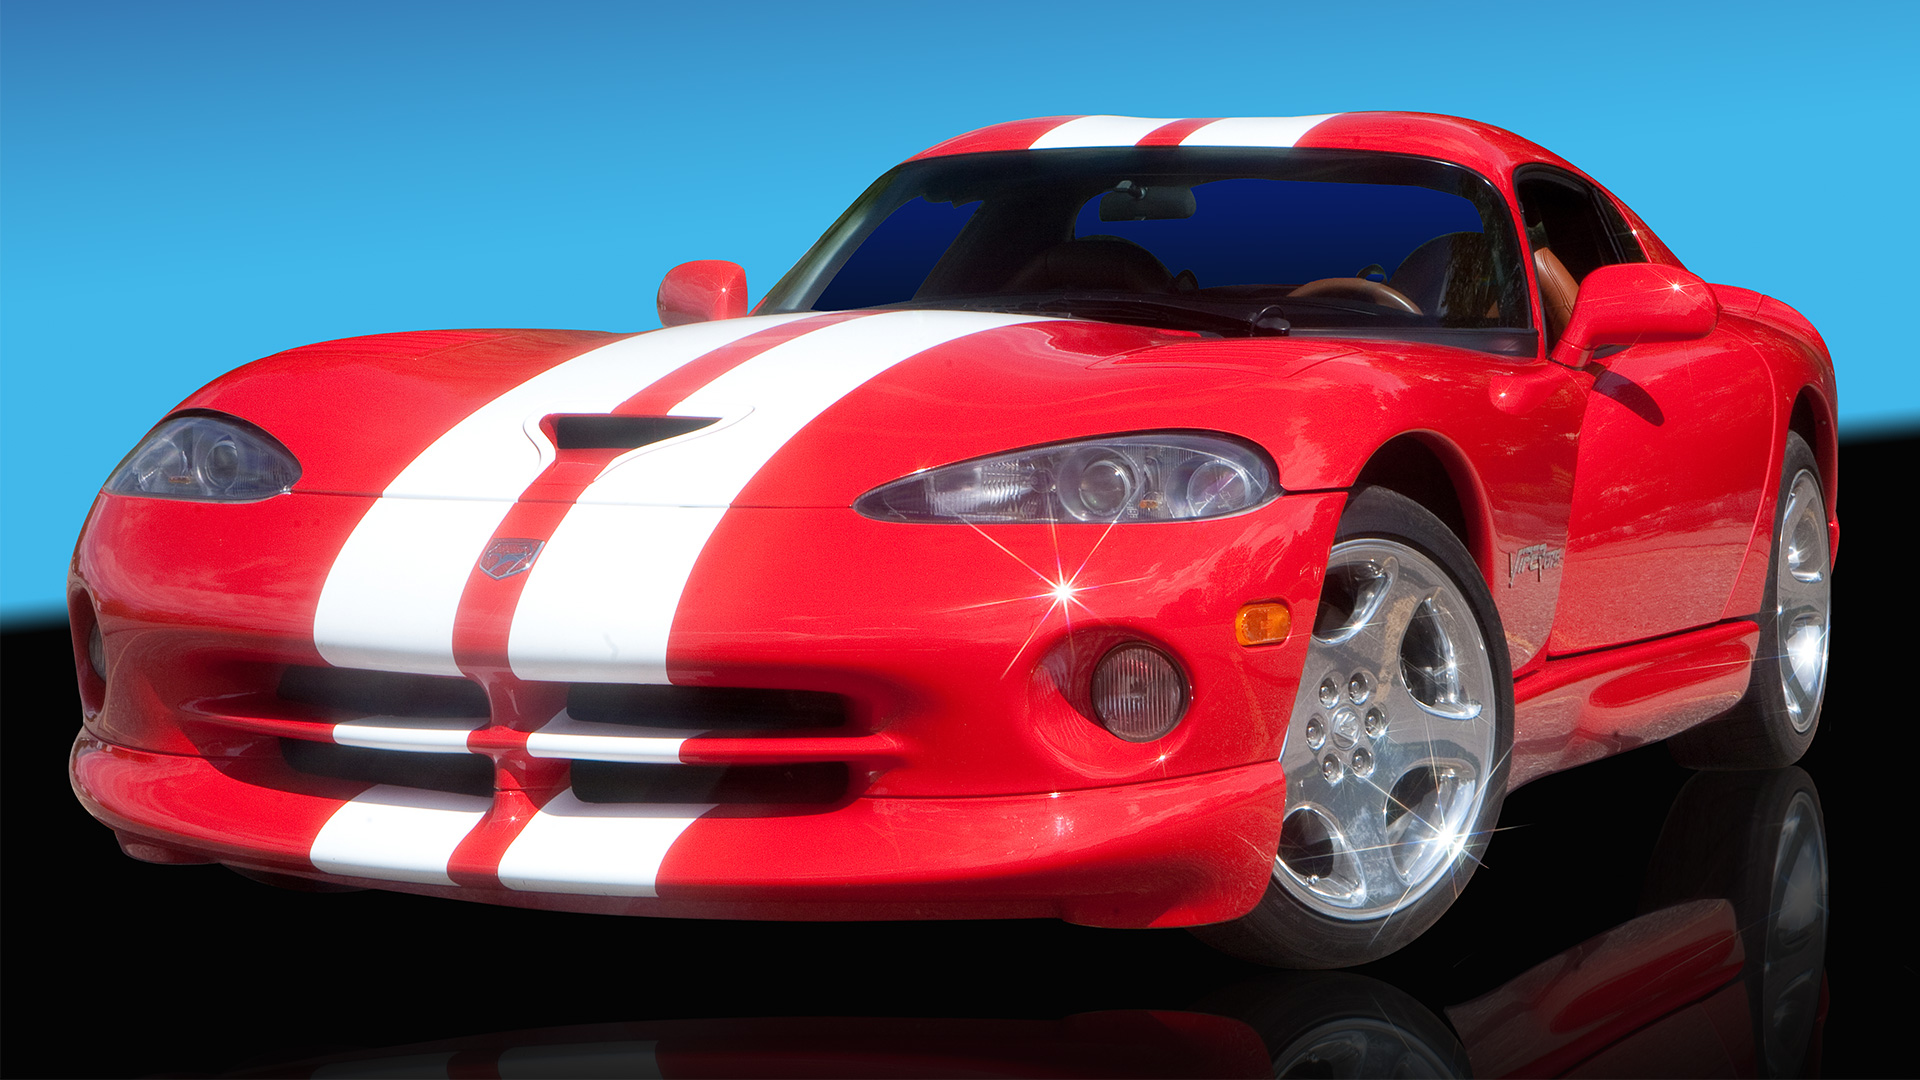 Ray Snyder's Red Dodge Viper